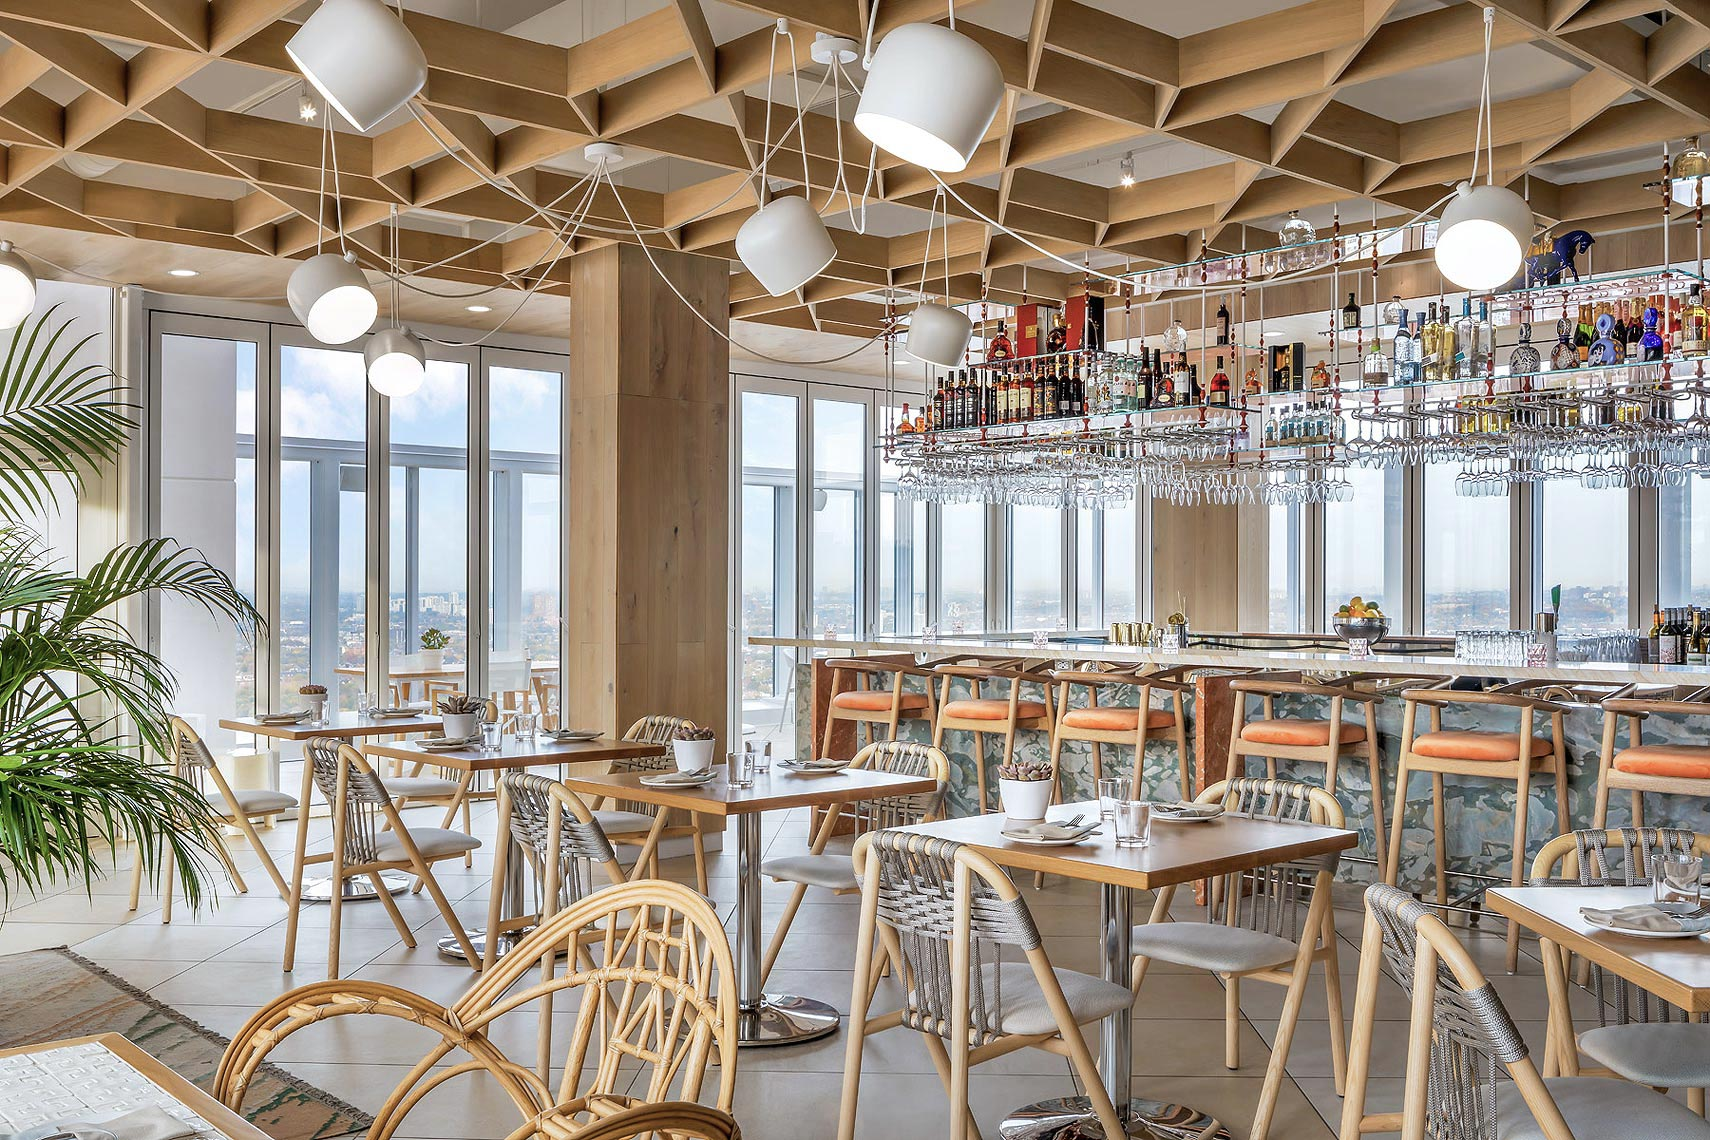 KOST Restaurant at Bisha Hotel, Toronto. Design by Studio Munge